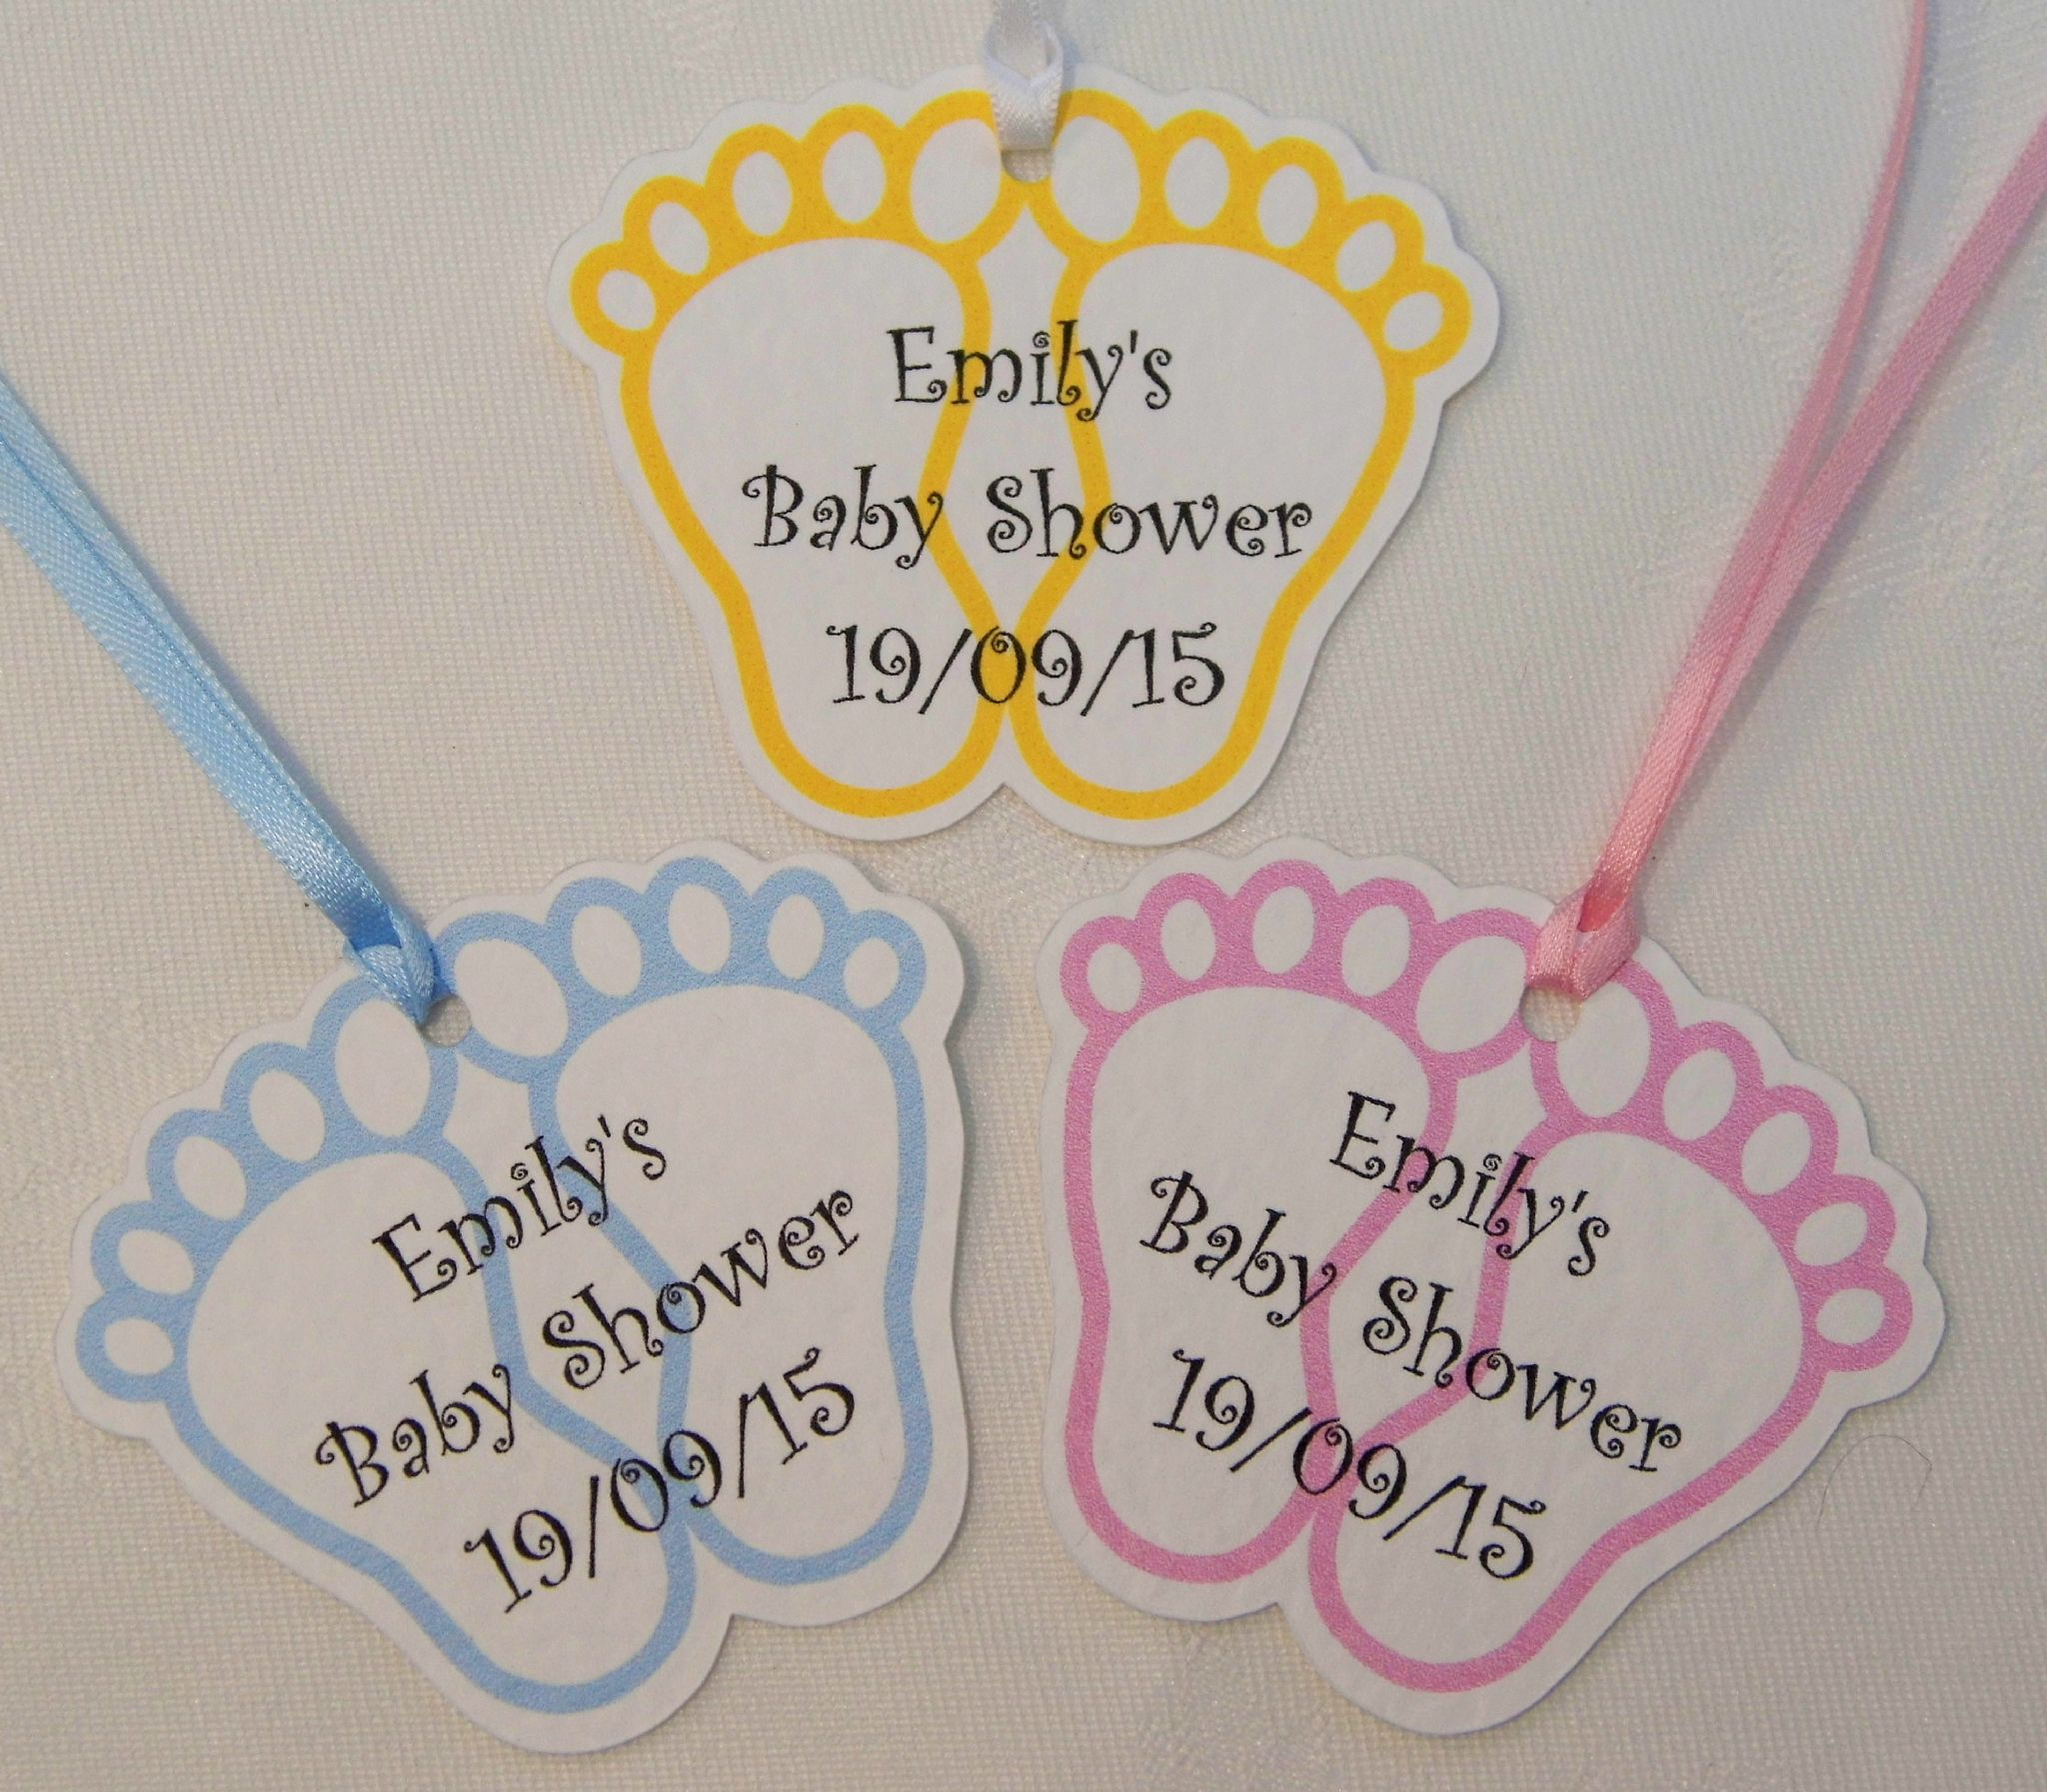 pics photos tags baby shower baby shower gifts diaper diaper bags